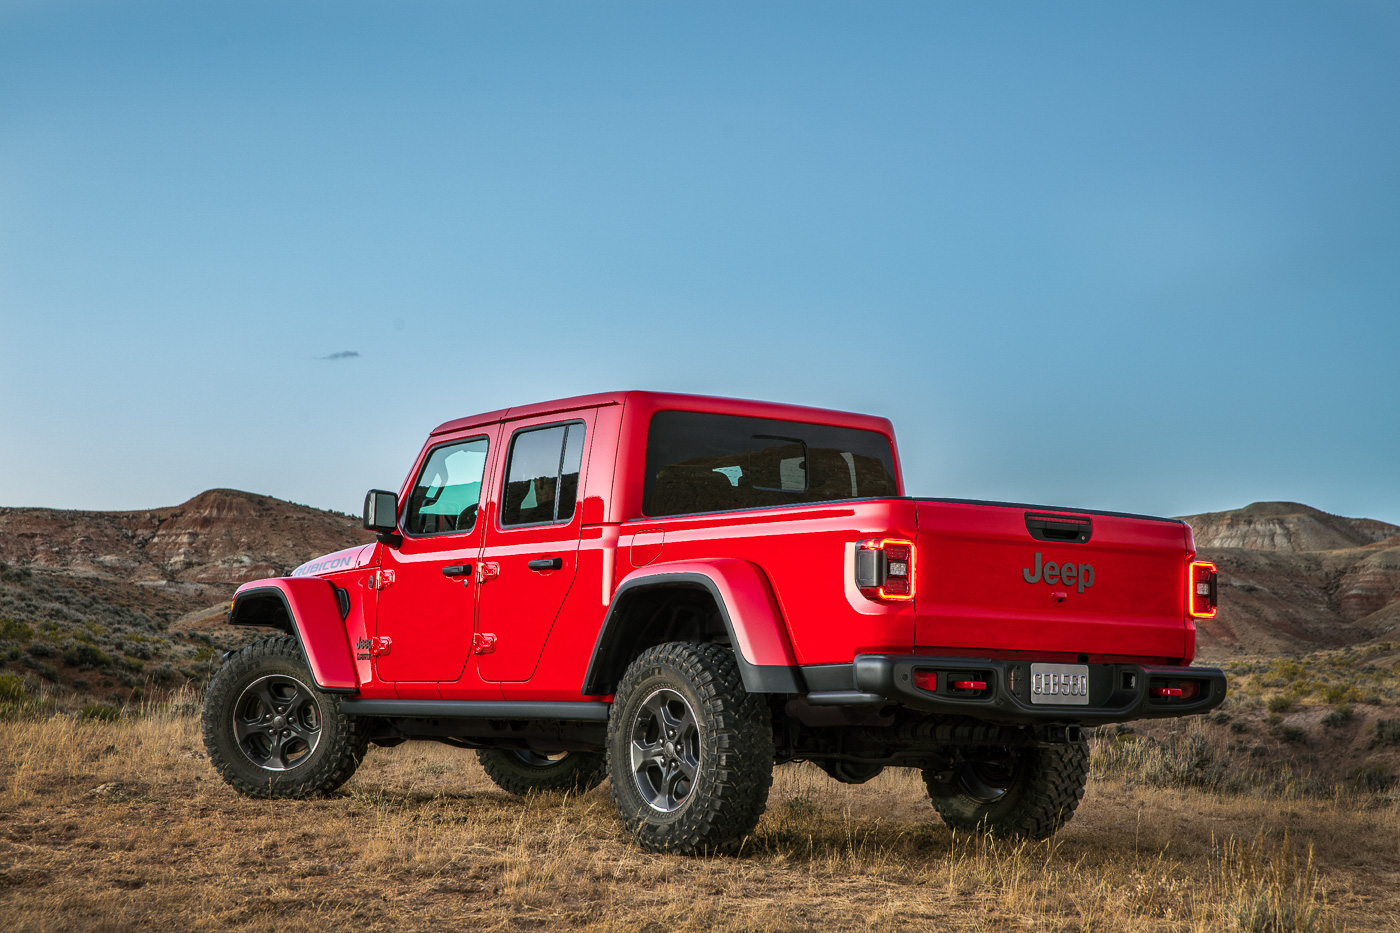 Jeep-Gladiator-Rubicon-74.jpg